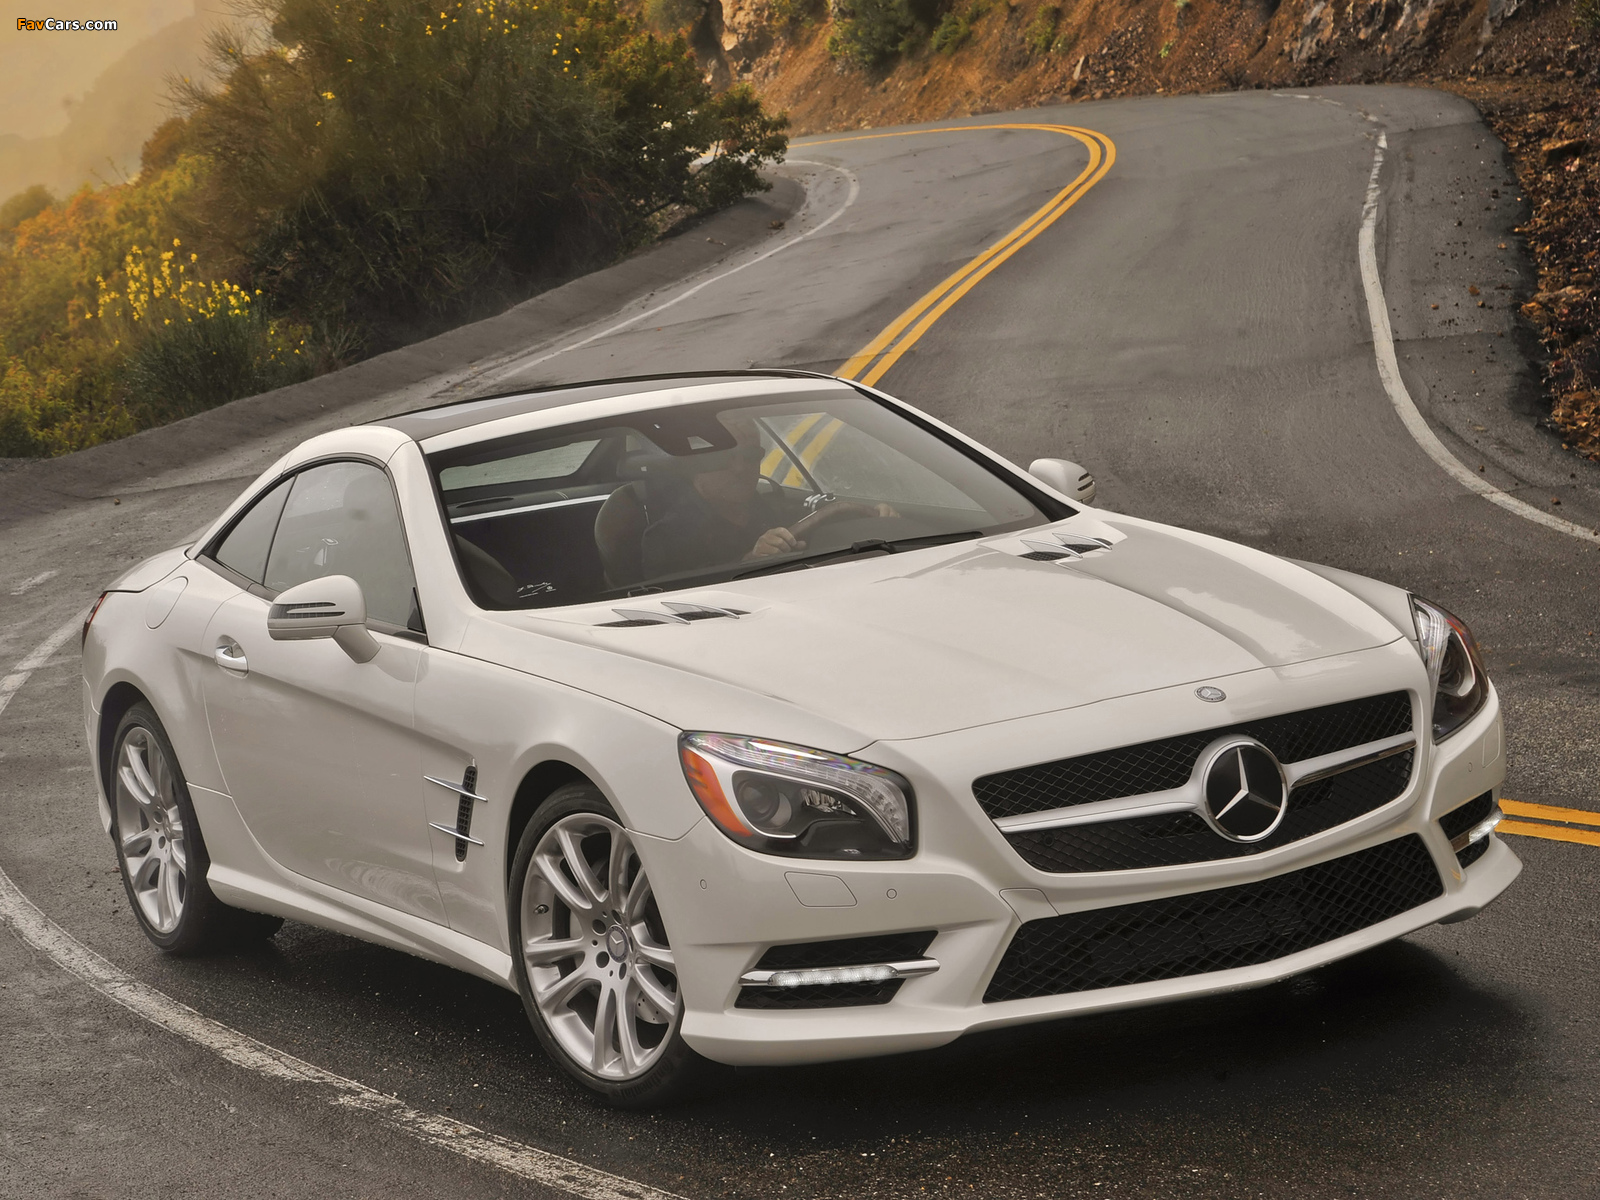 Mercedes-Benz SL 550 AMG Sports Package (R231) 2012 images (1600 x 1200)